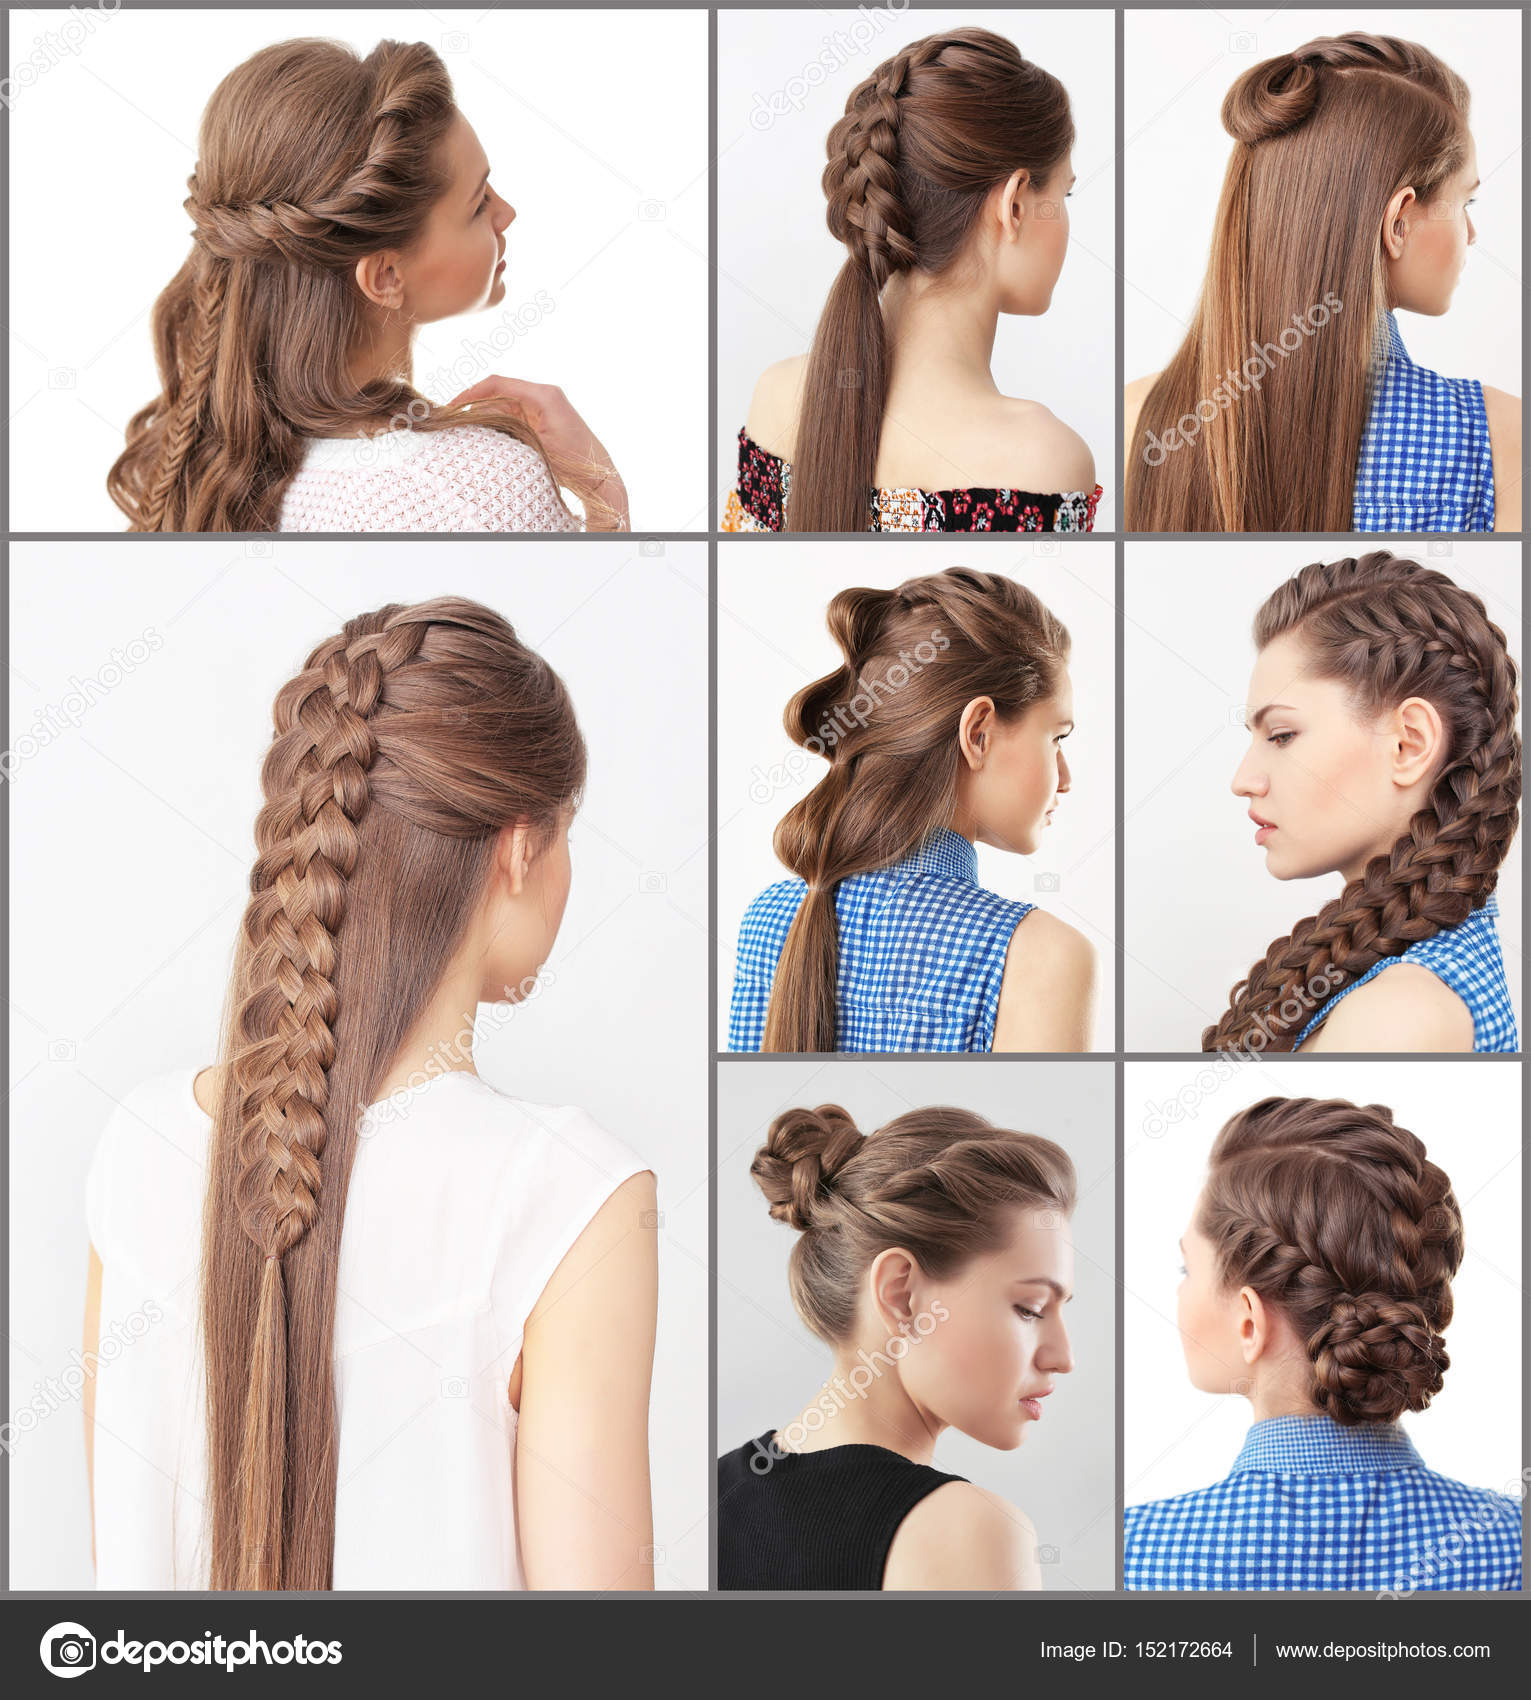 Woman Different Hairstyles Stock Photo Belchonock 152172664